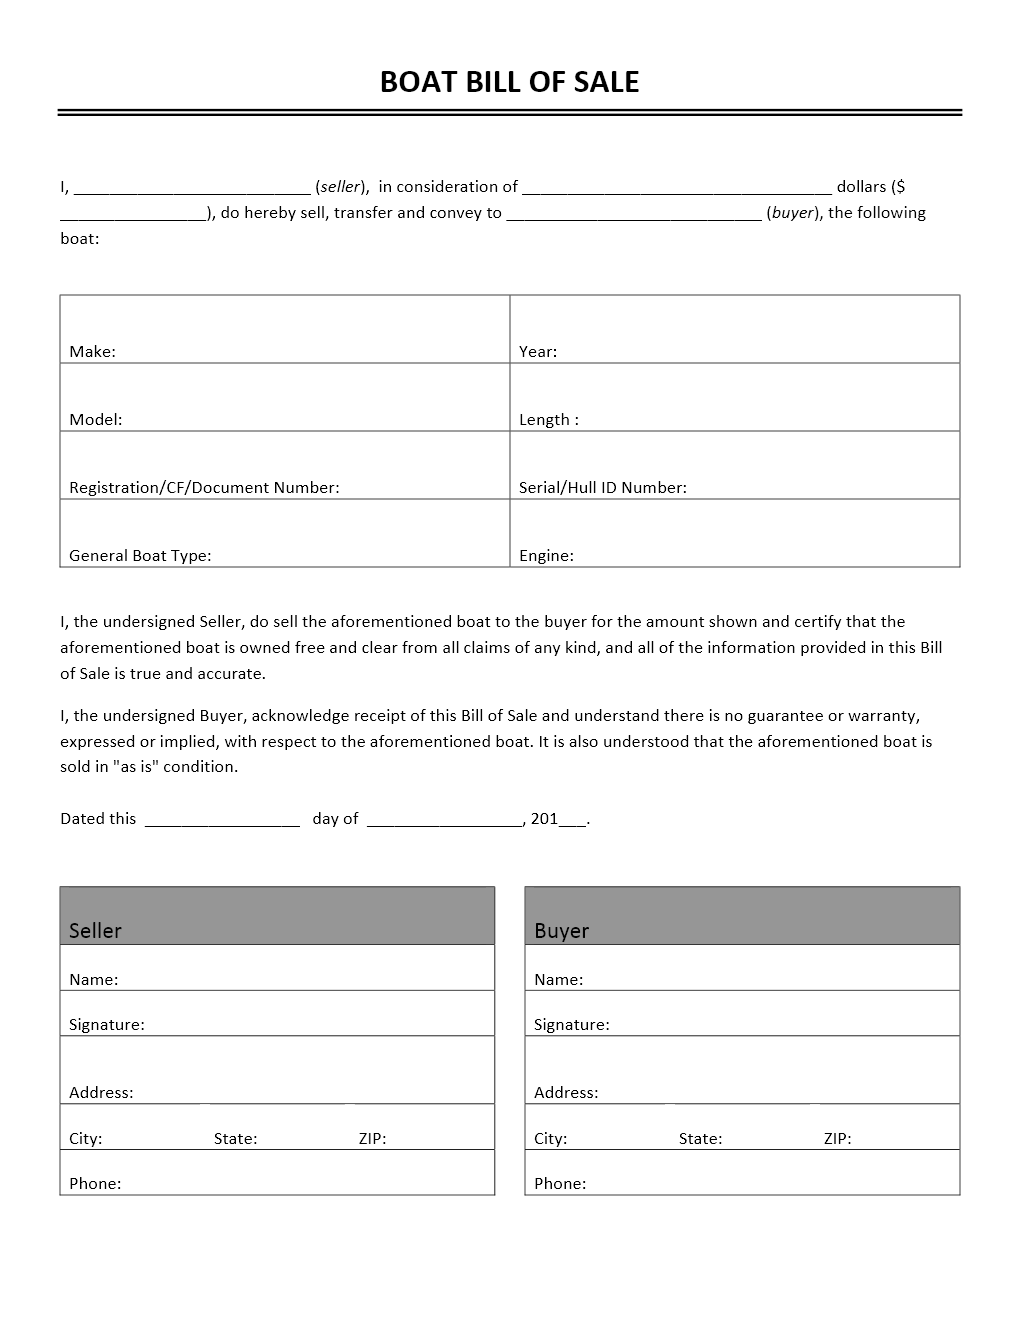 Freewordtemplates.net  Bill Of Sale Template For Boat